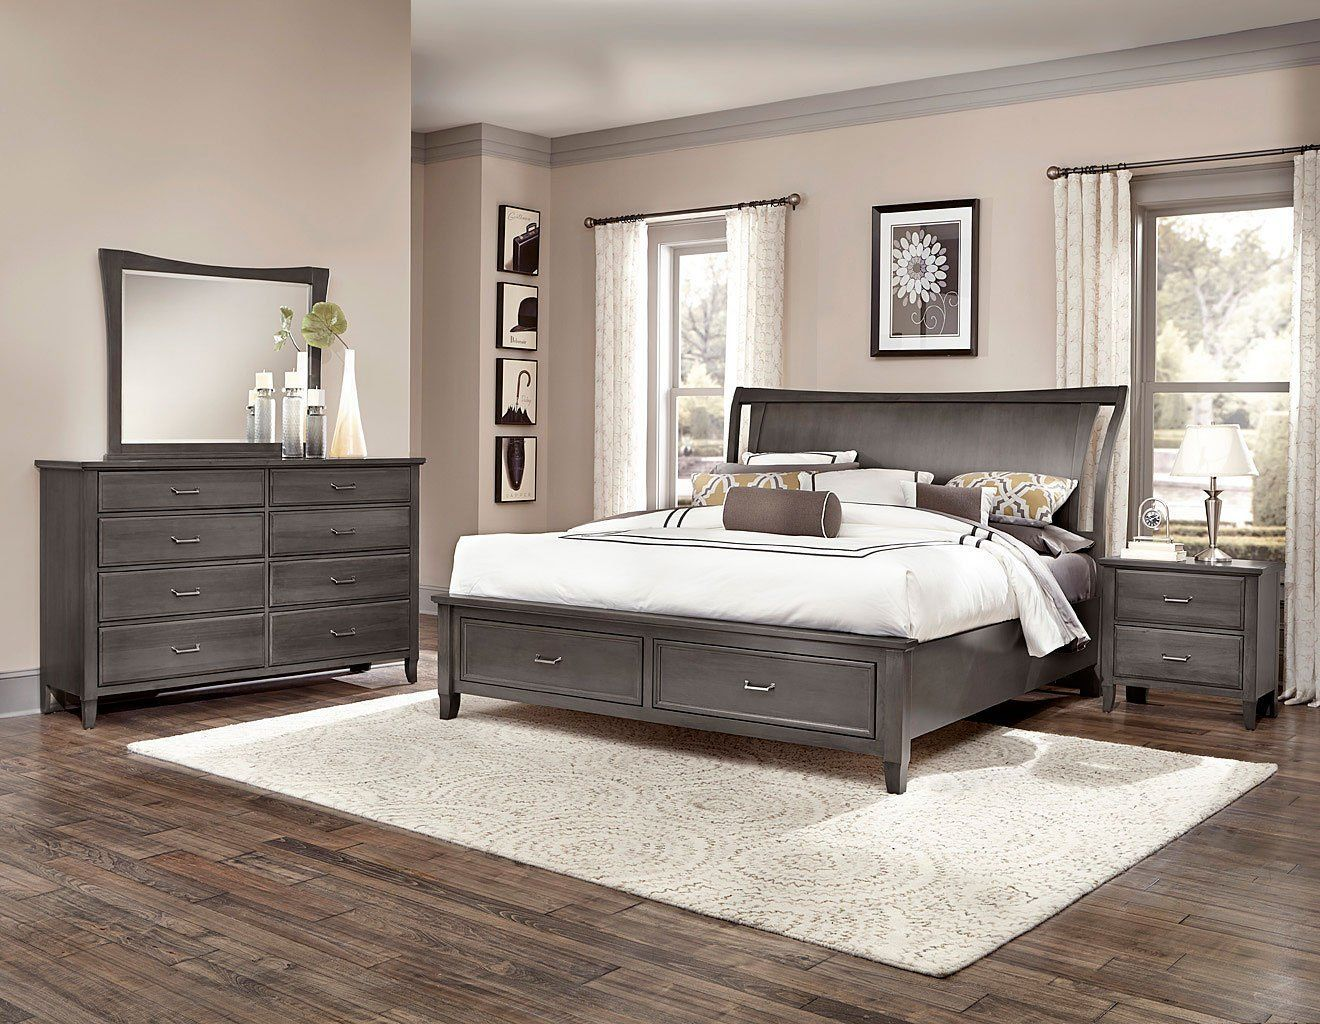 The Commentary Steel Wing Storage Bedroom Set by Vaughan